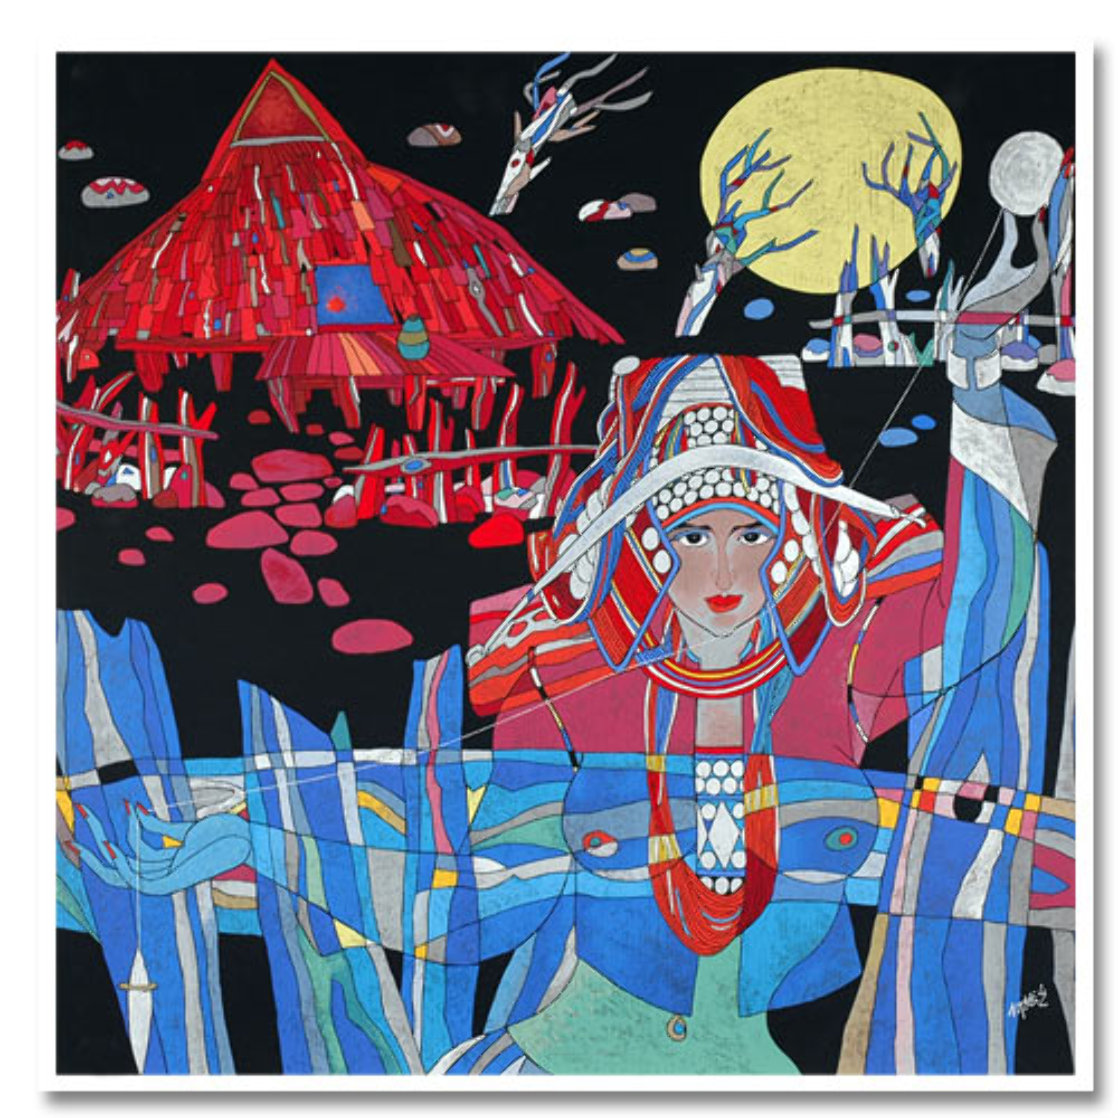 Lady With Thread 1989 38x37 Super Huge  Limited Edition Print by He Deguang